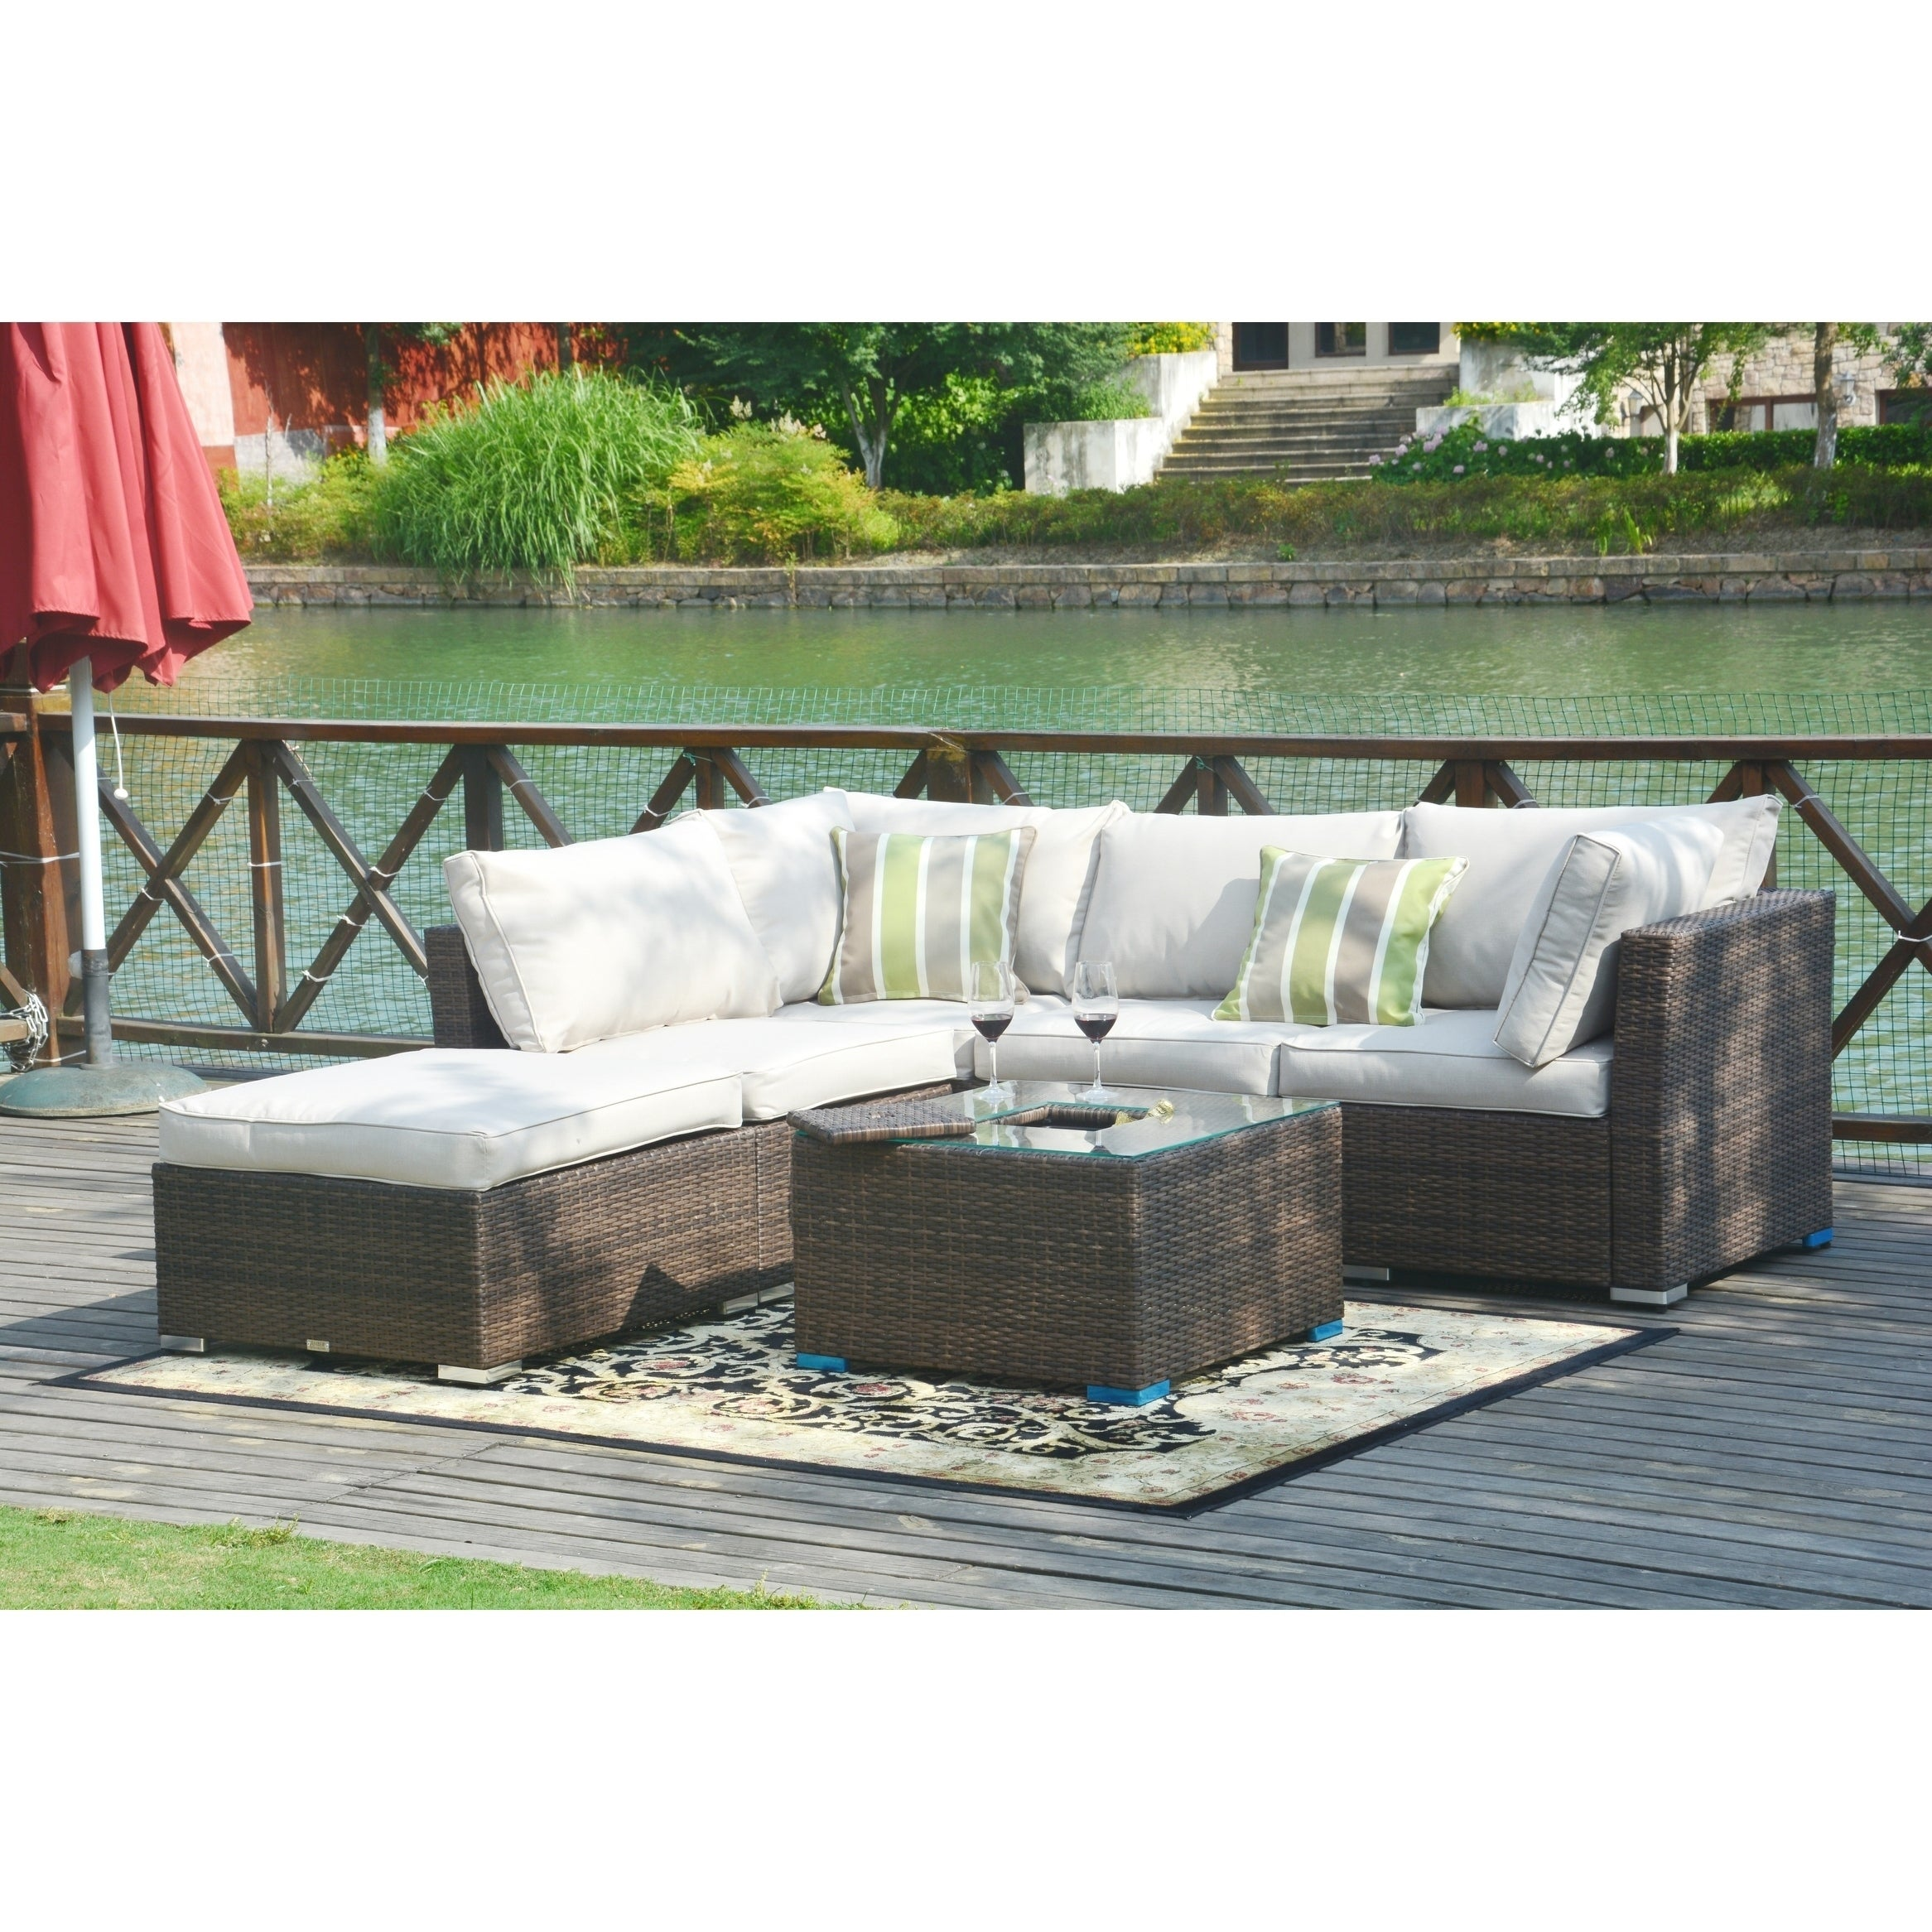 6245c606bc35f Shop 4-piece Wicker Patio Sectional Sofa Set with Ice Bucket Table Outdoor  Furniture - Free Shipping Today - Overstock - 26292949